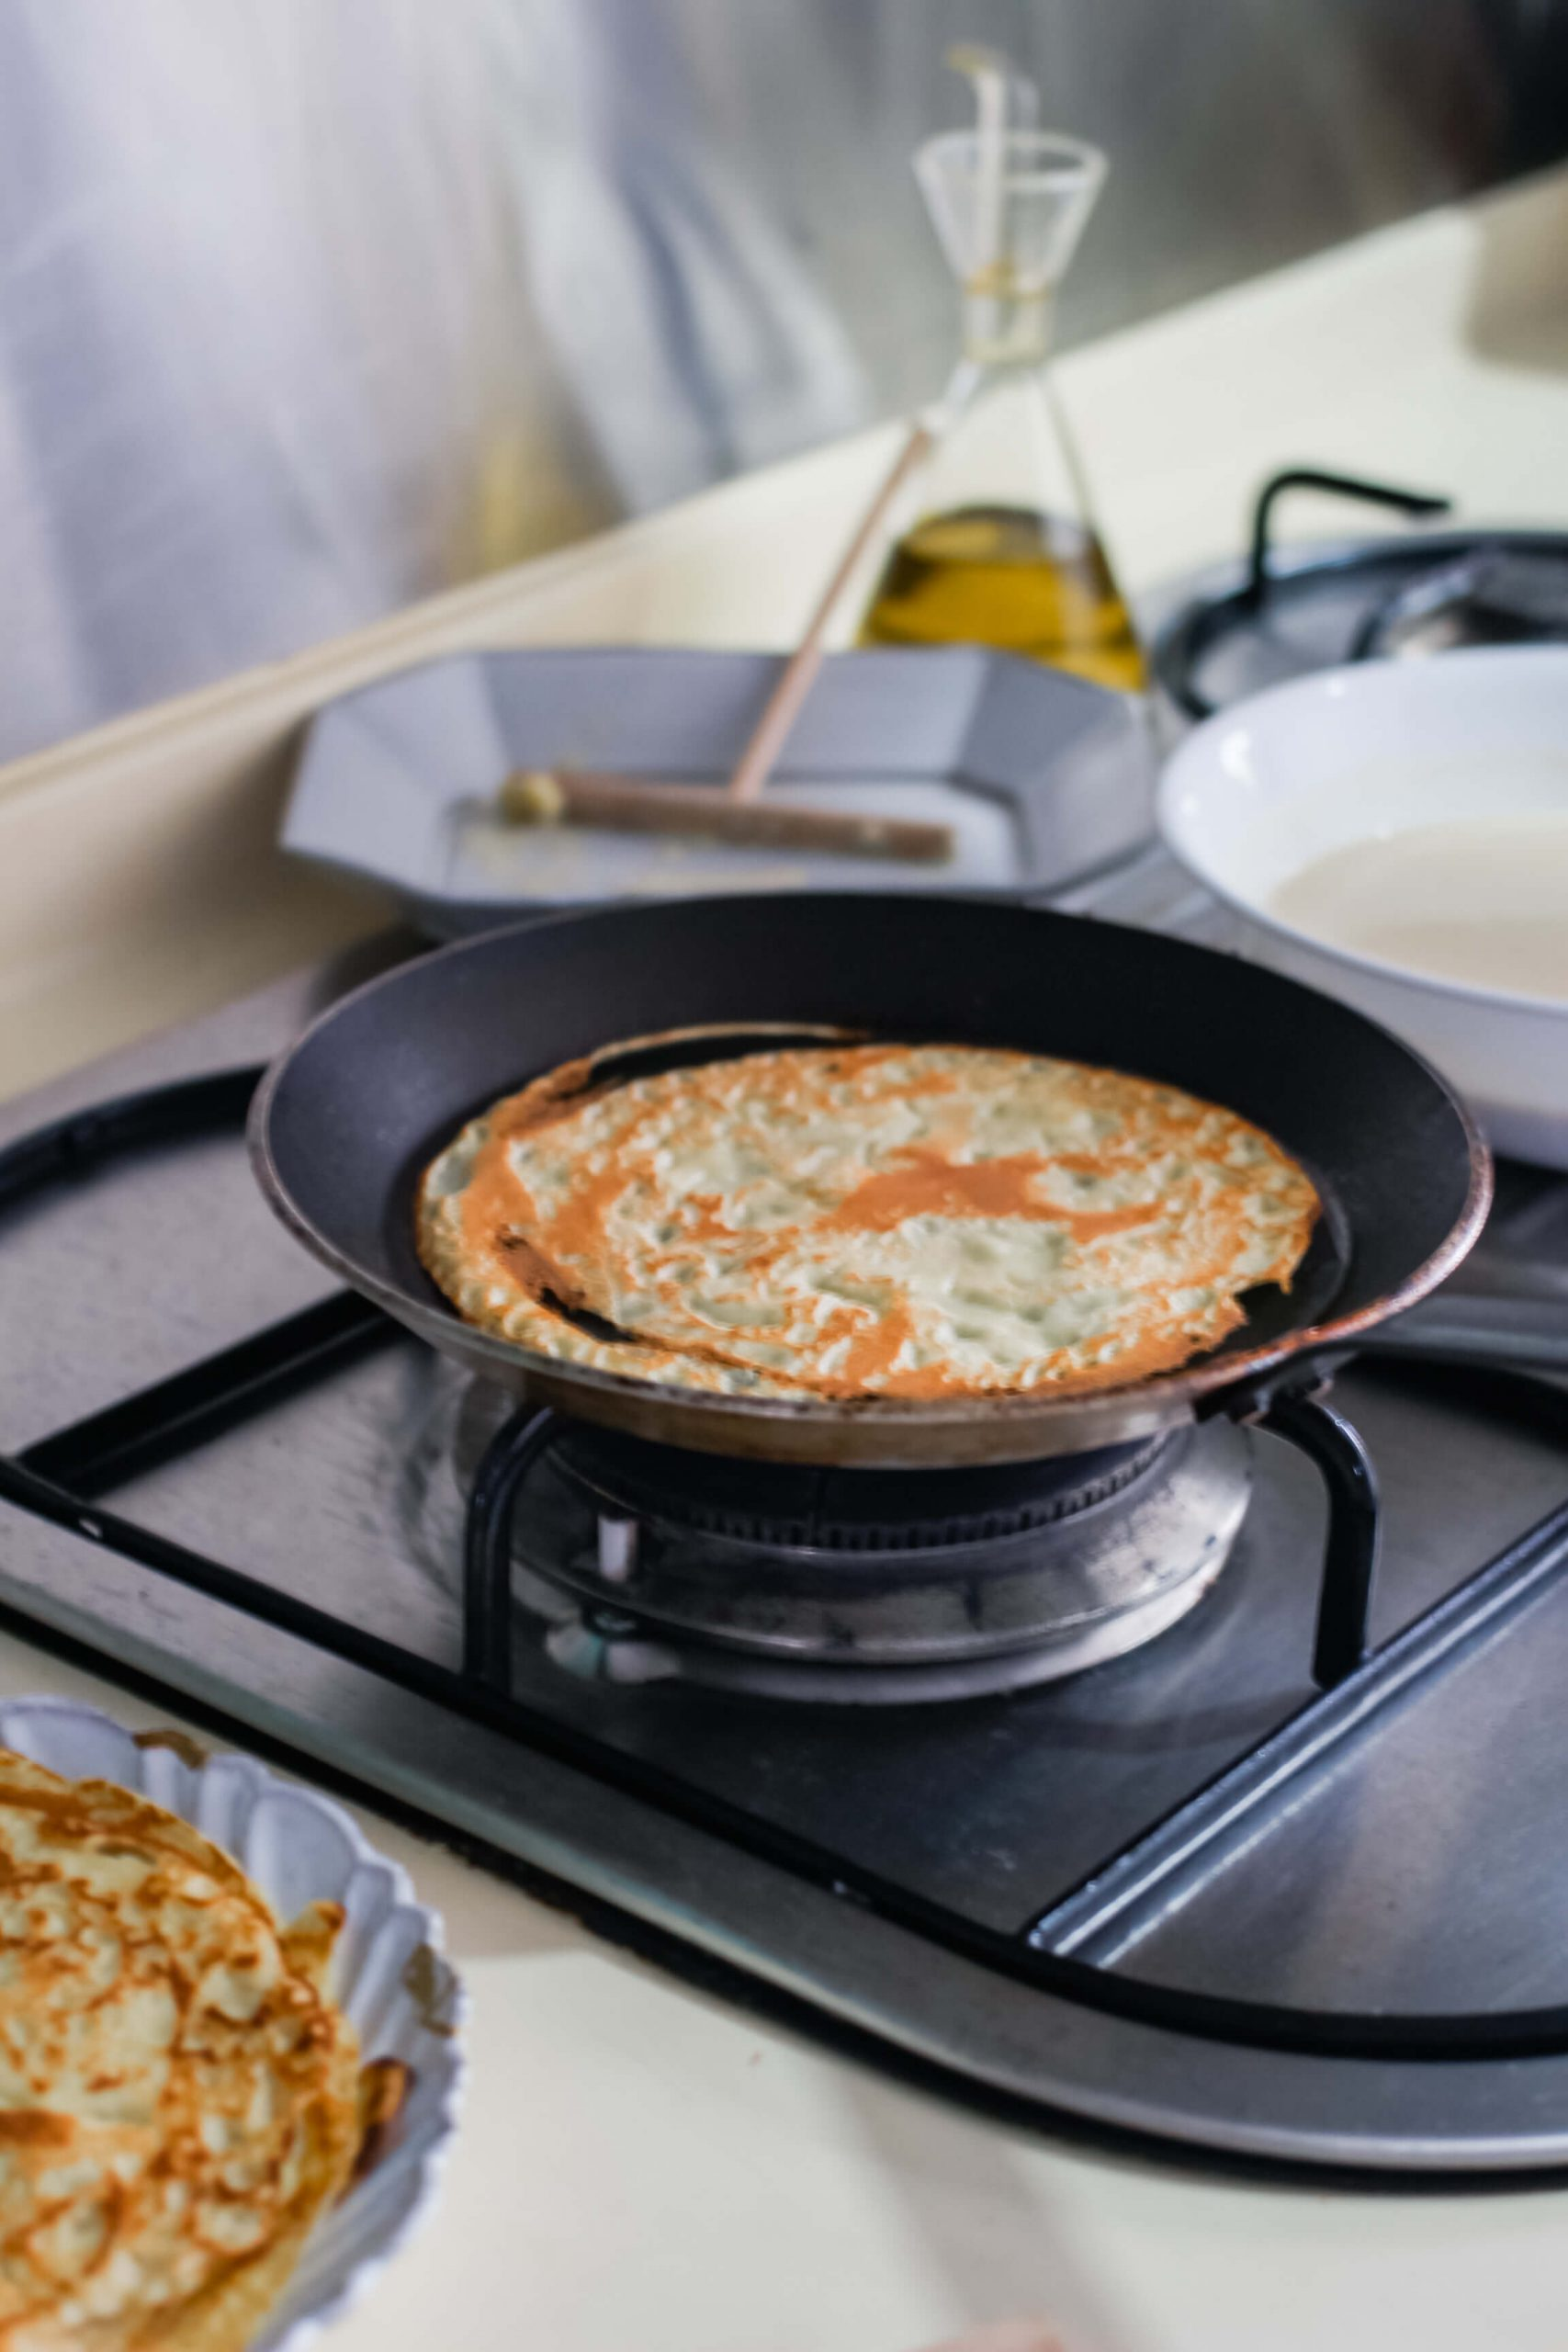 A small pan cooking a crepe.